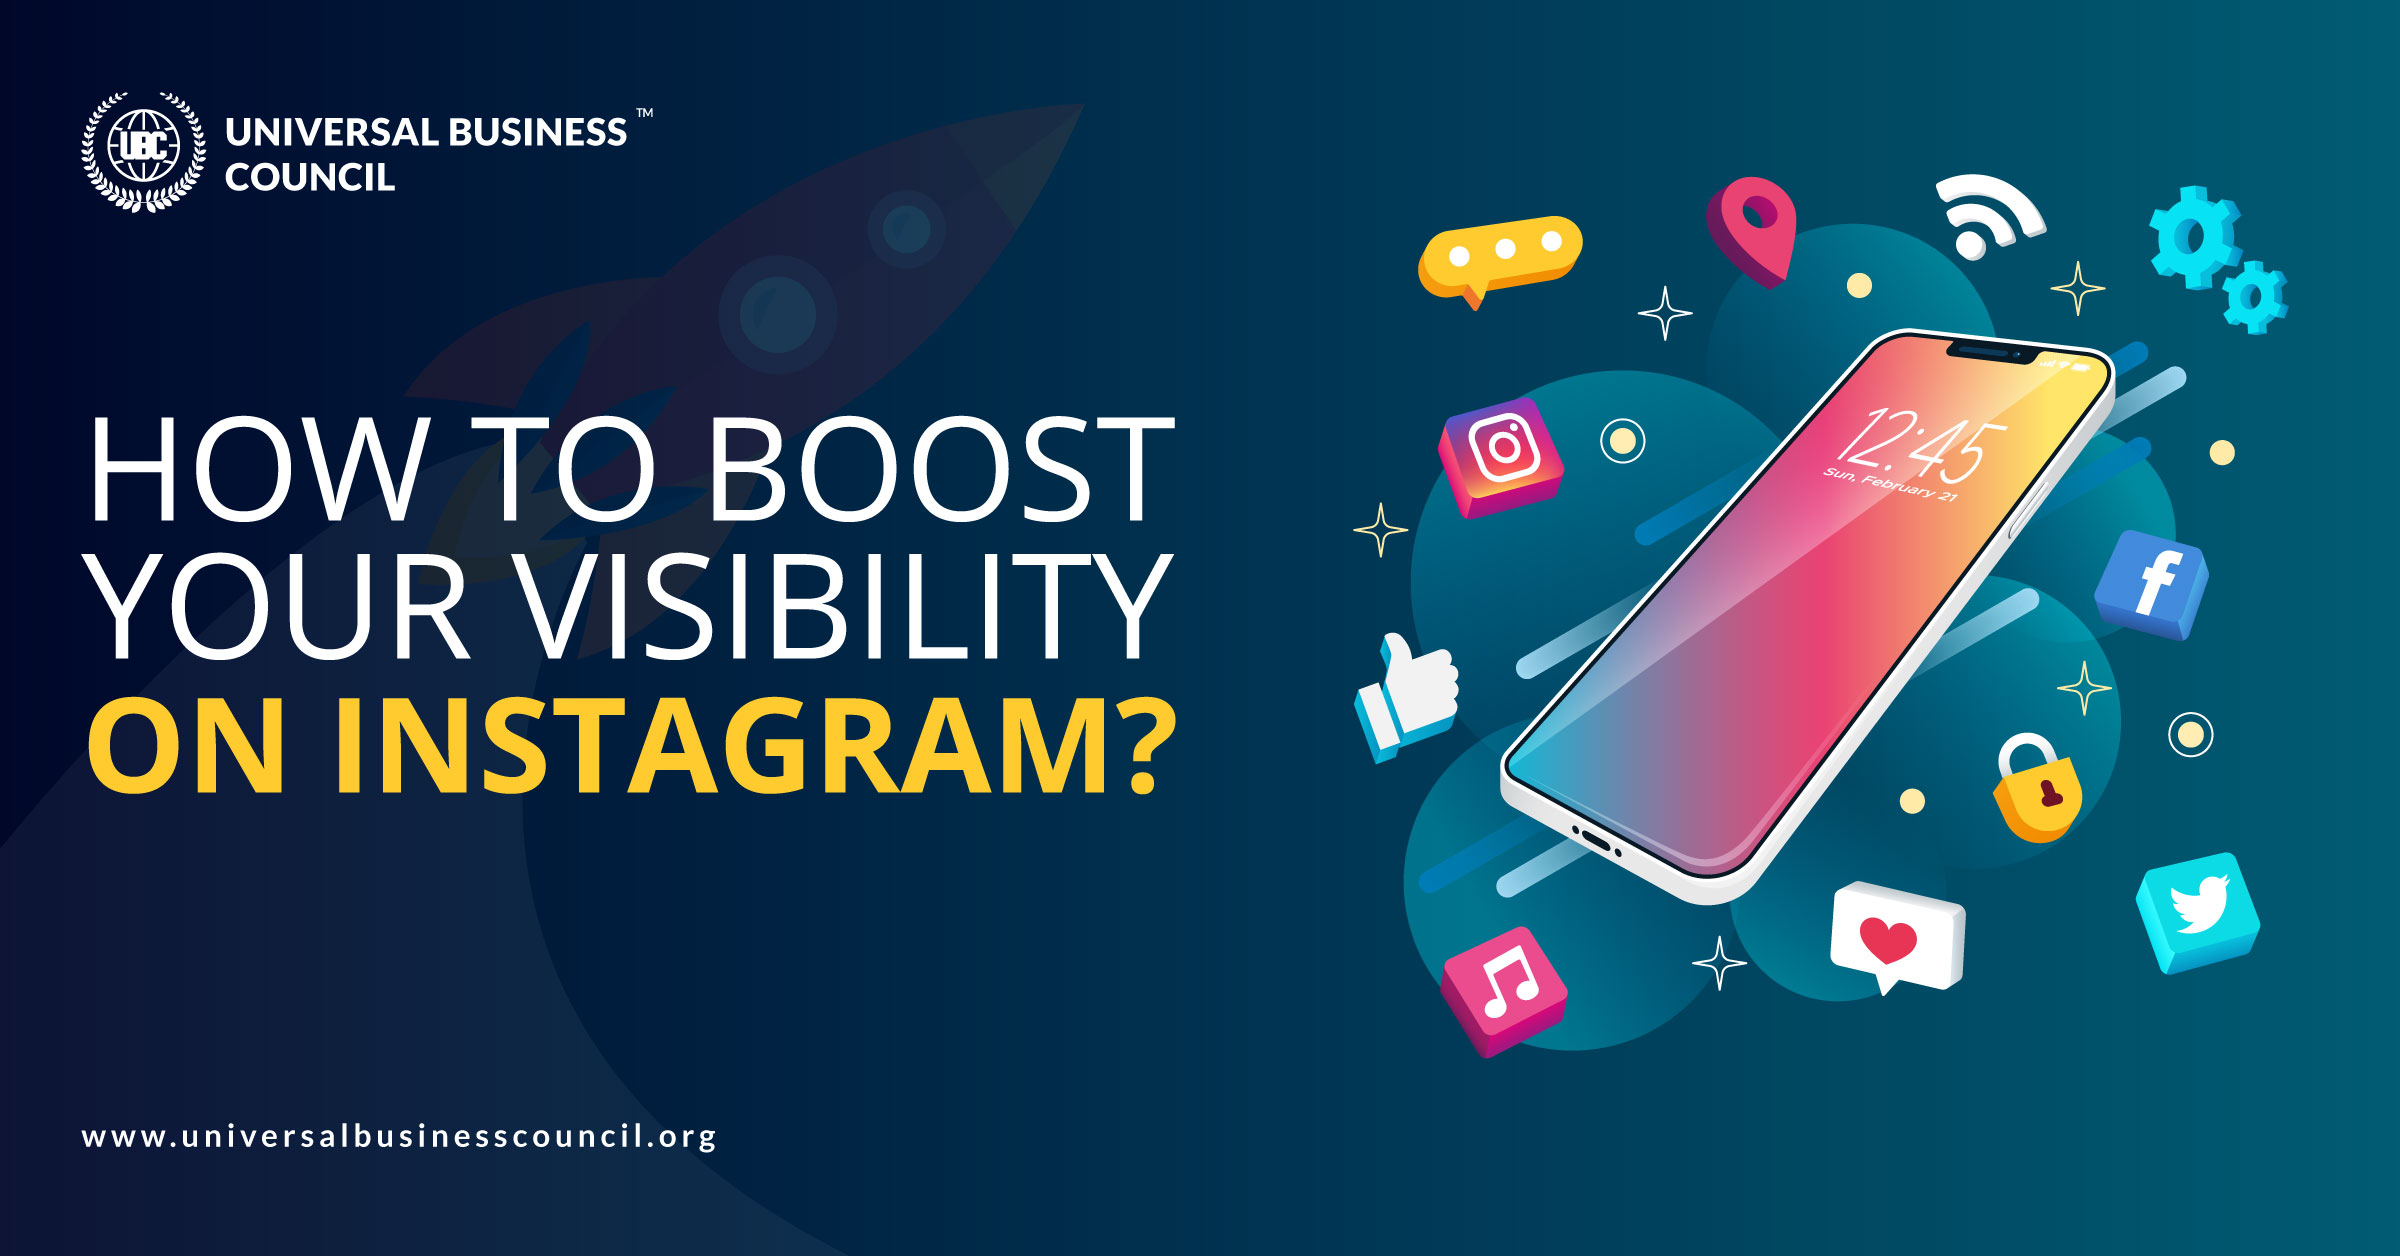 How-To-Boost-Your-Visibility-On-Instagram